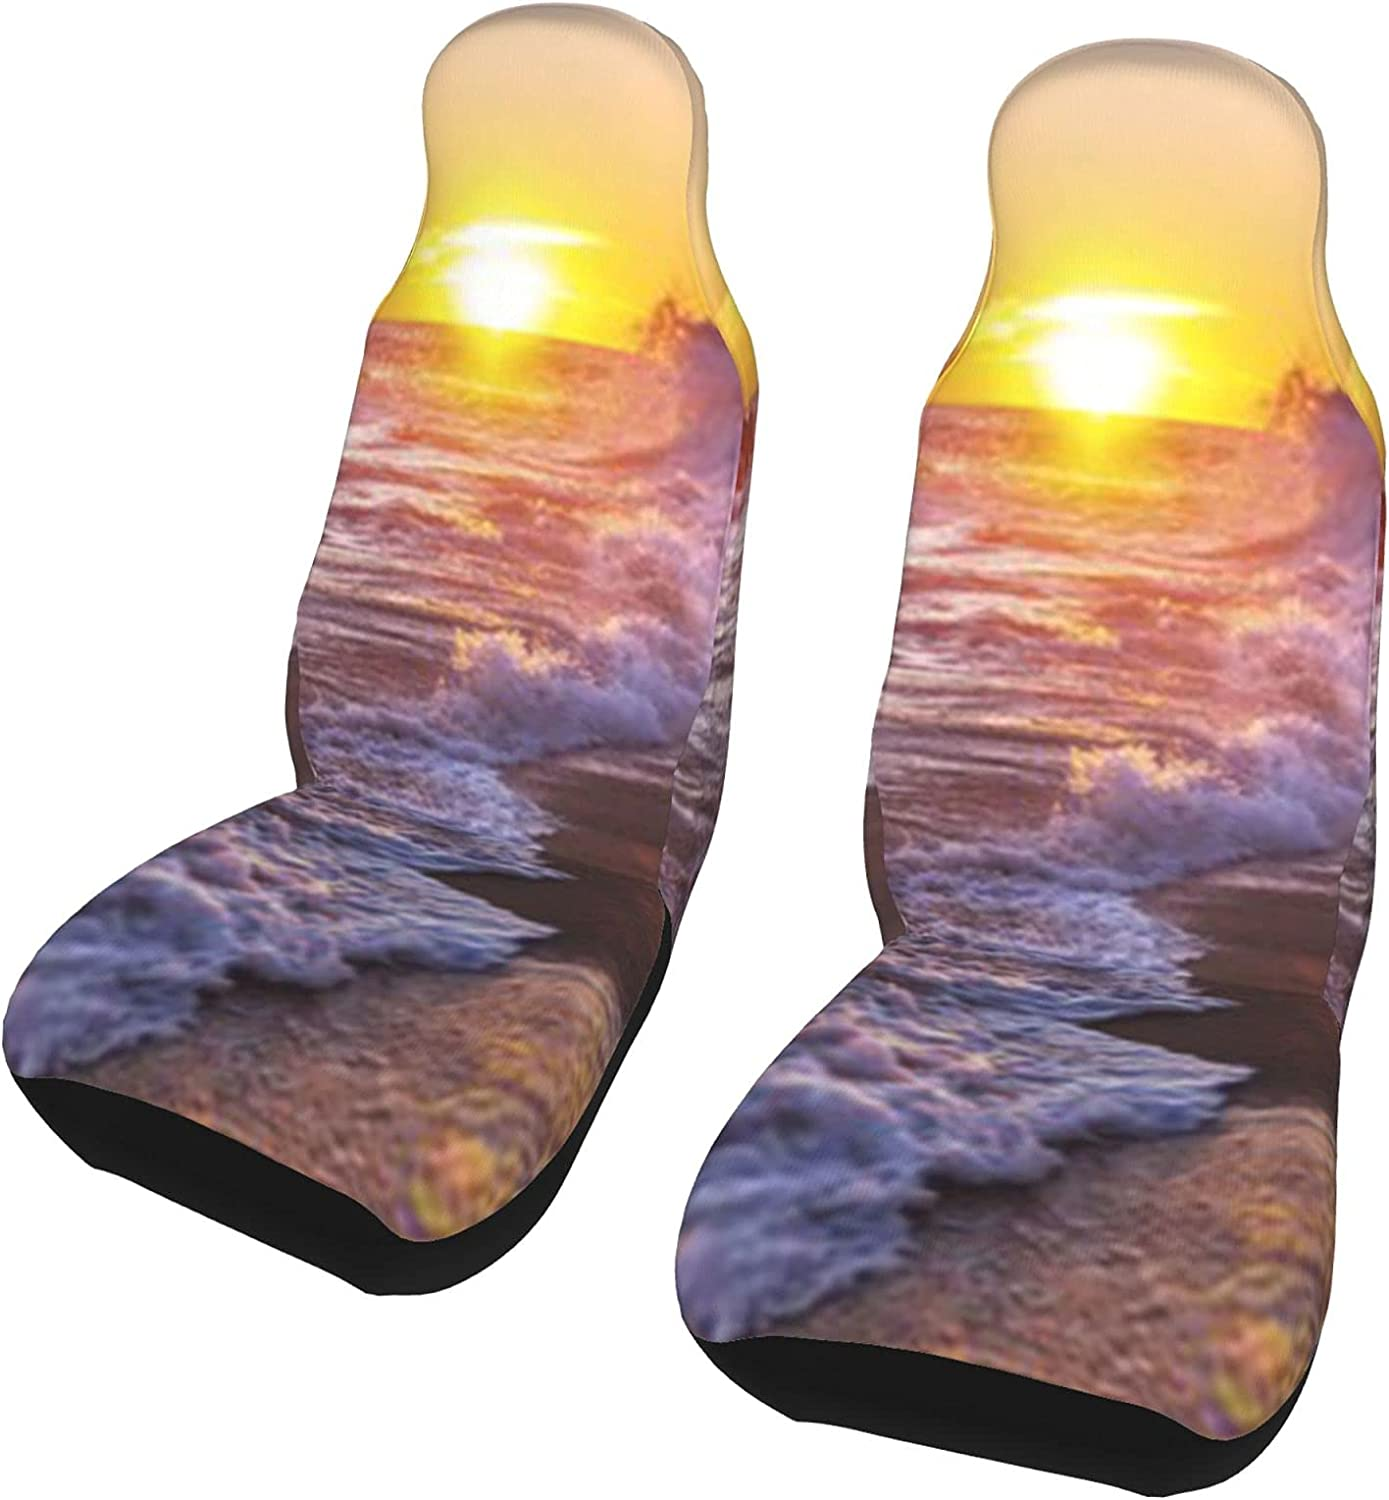 Beautiful Bargain sale Beach Ranking TOP17 Sunset Front Seat Covers Set Pcs 2 Car Protector